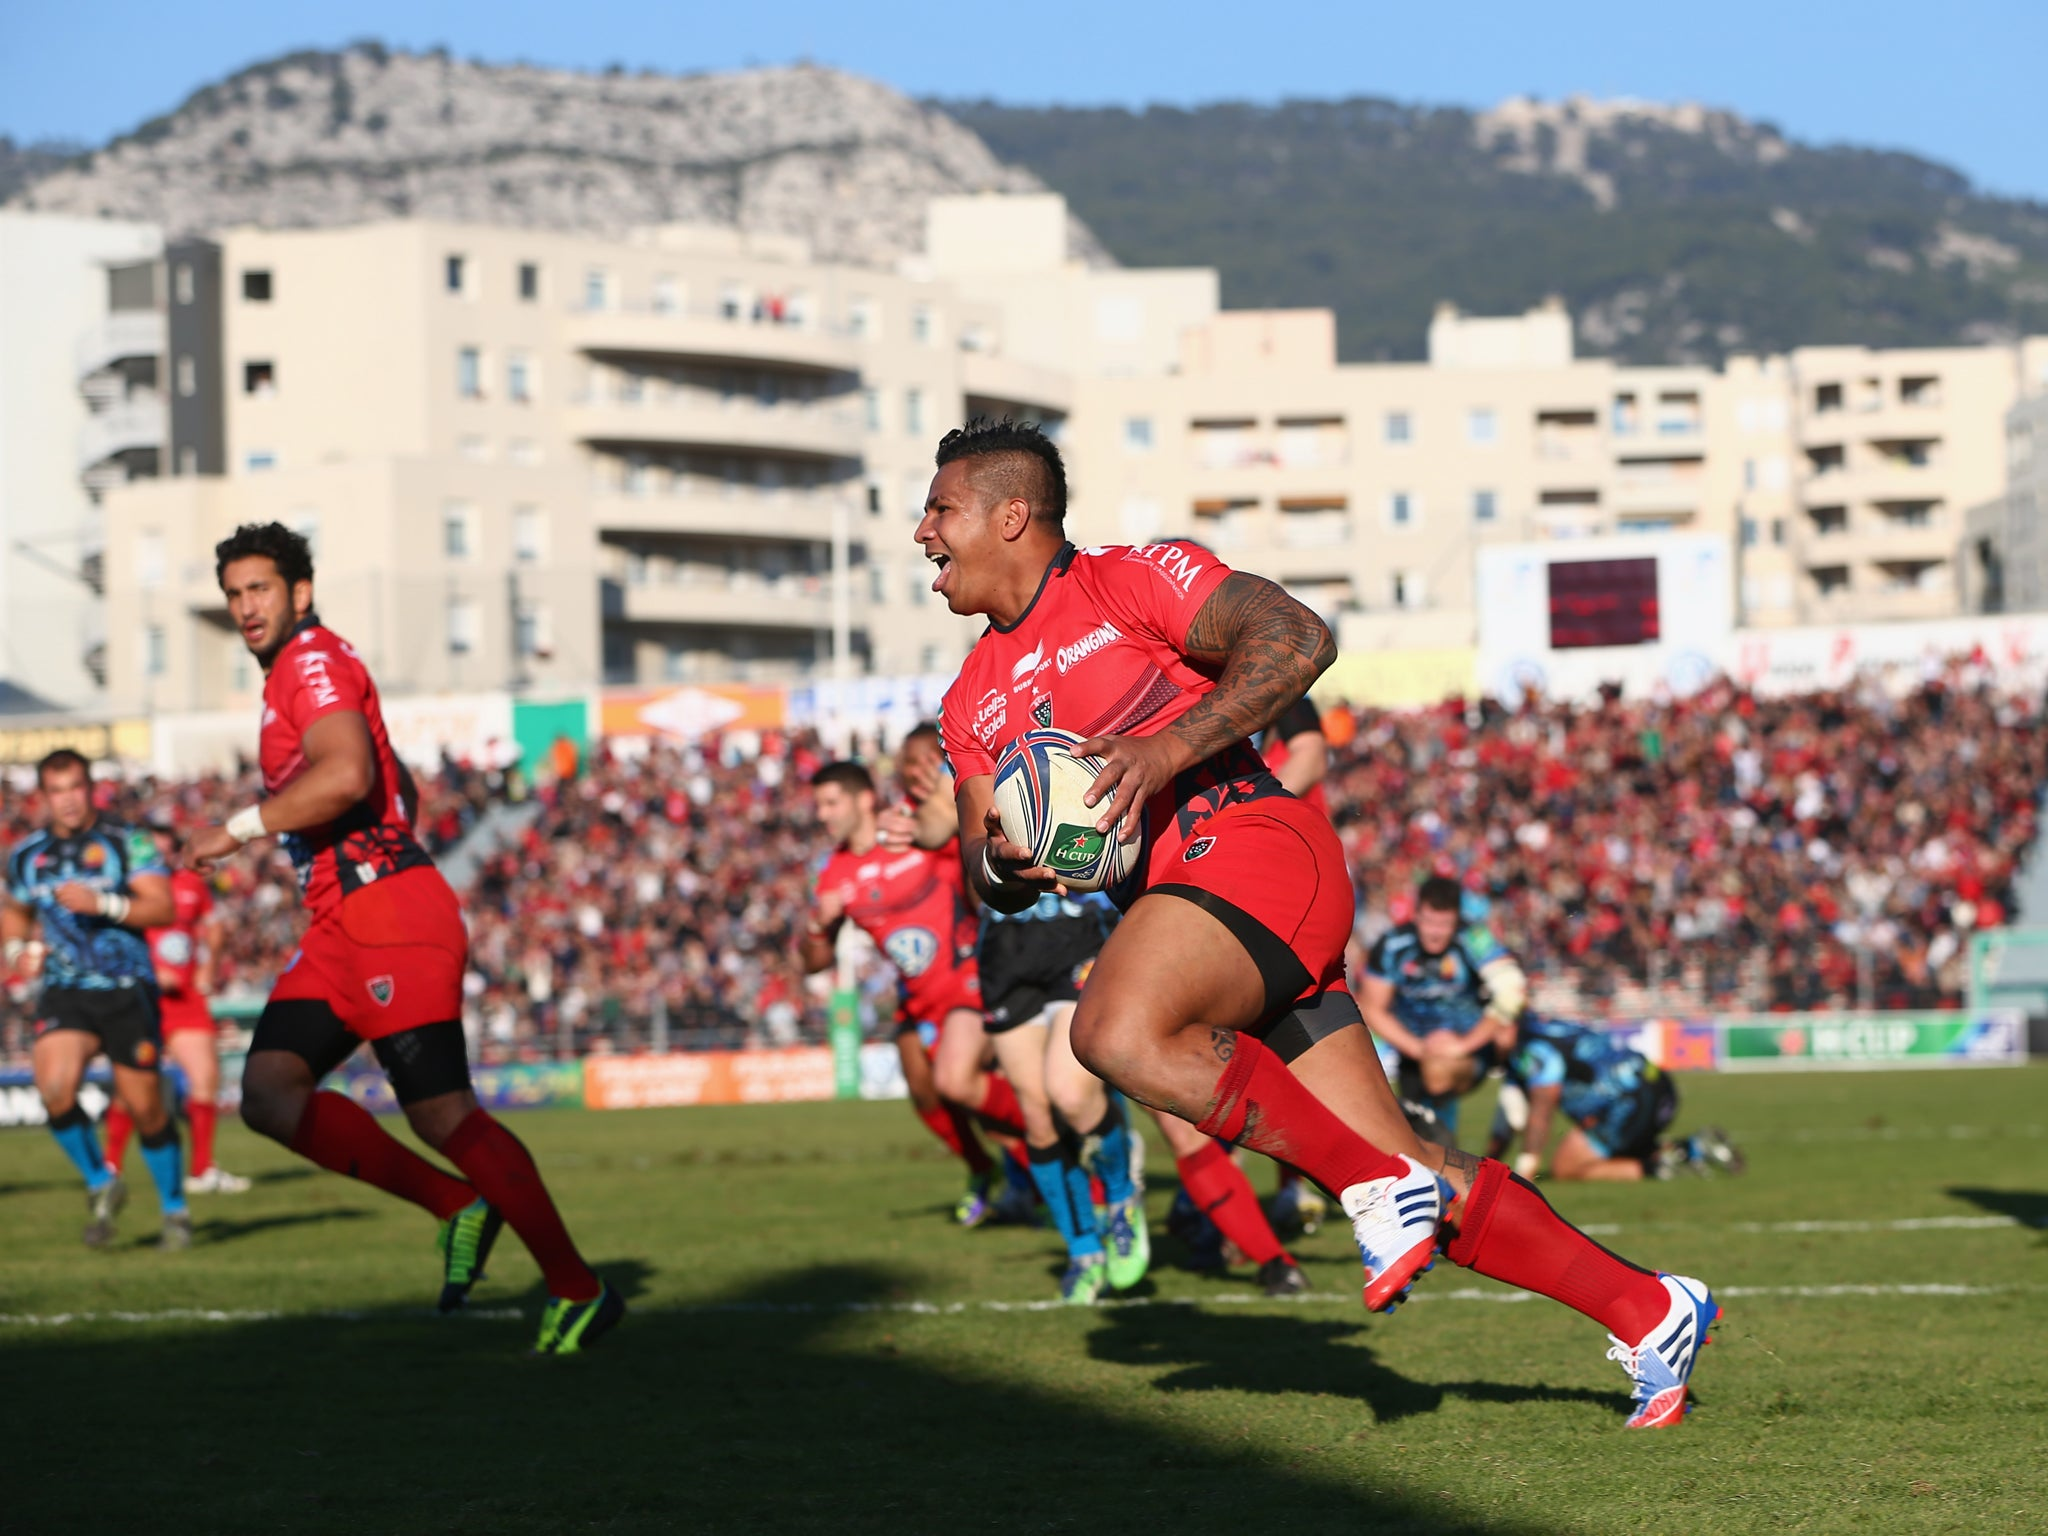 Toulon 32 Exeter Chiefs 20 match report: Toulon show lively Chiefs who's boss   The Independentindependent_brand_ident_LOGOUntitled